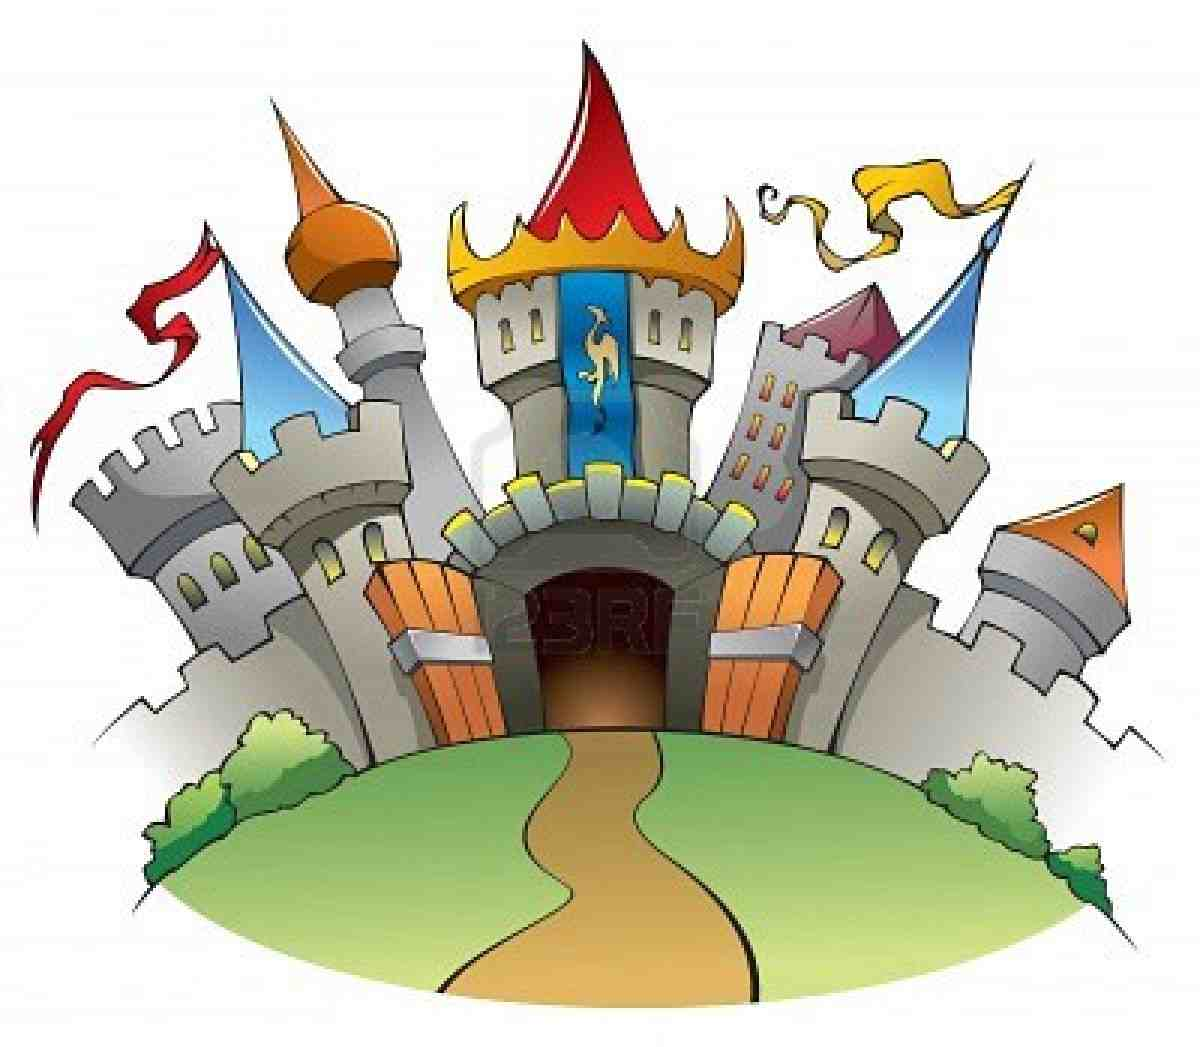 fairytale castle clipart-fairytale castle clipart-1